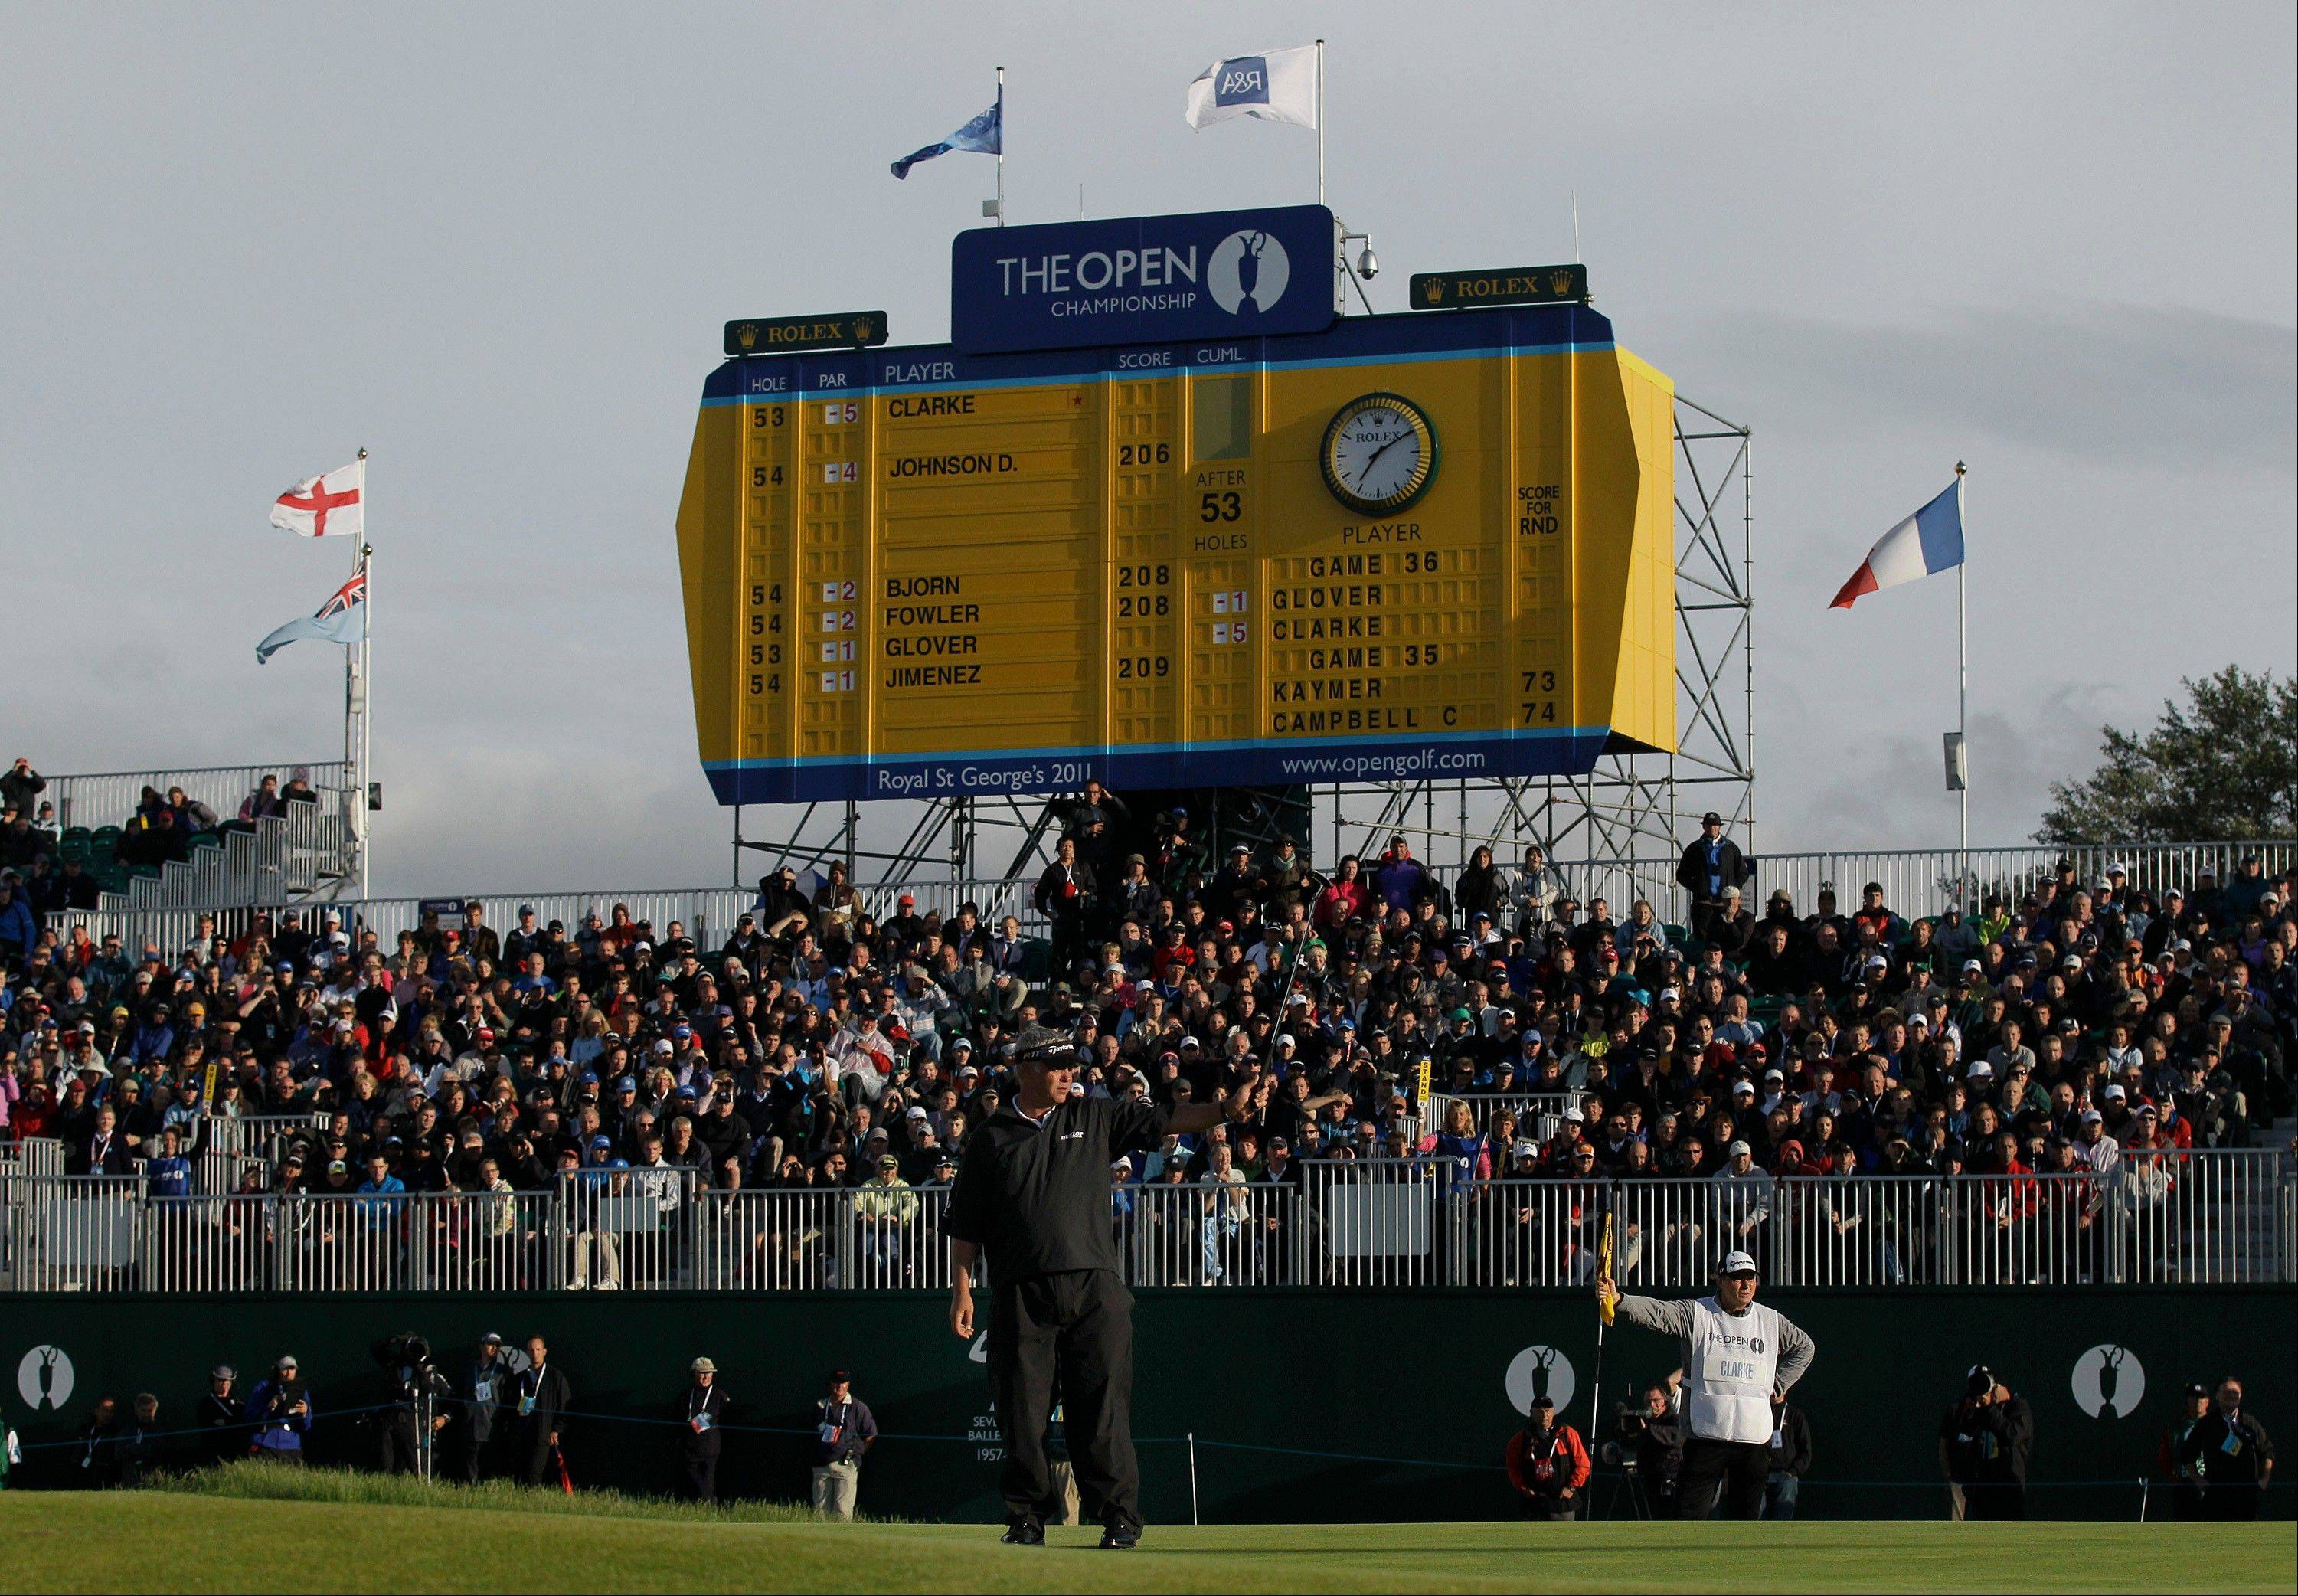 Northern Ireland's Darren Clarke reacts in front of the scoreboard on the 18th green after his round during the third day of the British Open Golf Championship at Royal St George's golf course Sandwich, England, Saturday, July 16, 2011. (AP Photo/Matt Dunham)